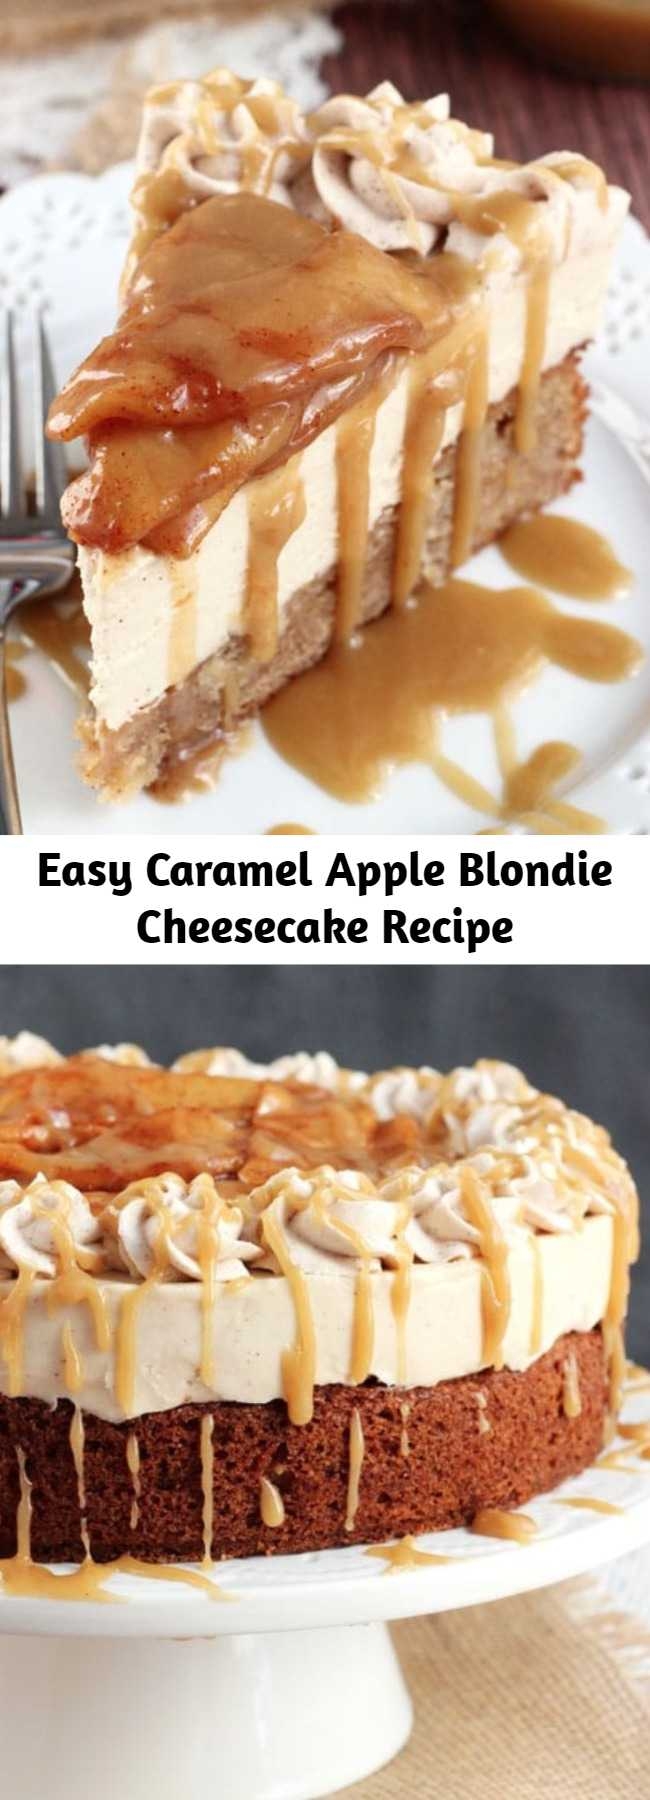 Easy Caramel Apple Blondie Cheesecake Recipe - This Caramel Apple Blondie Cheesecake is pure caramel apple heaven, I kid you not. It has layers of apple spice blondie and no-bake caramel cheesecake, and it's topped with cinnamon apples and caramel sauce!